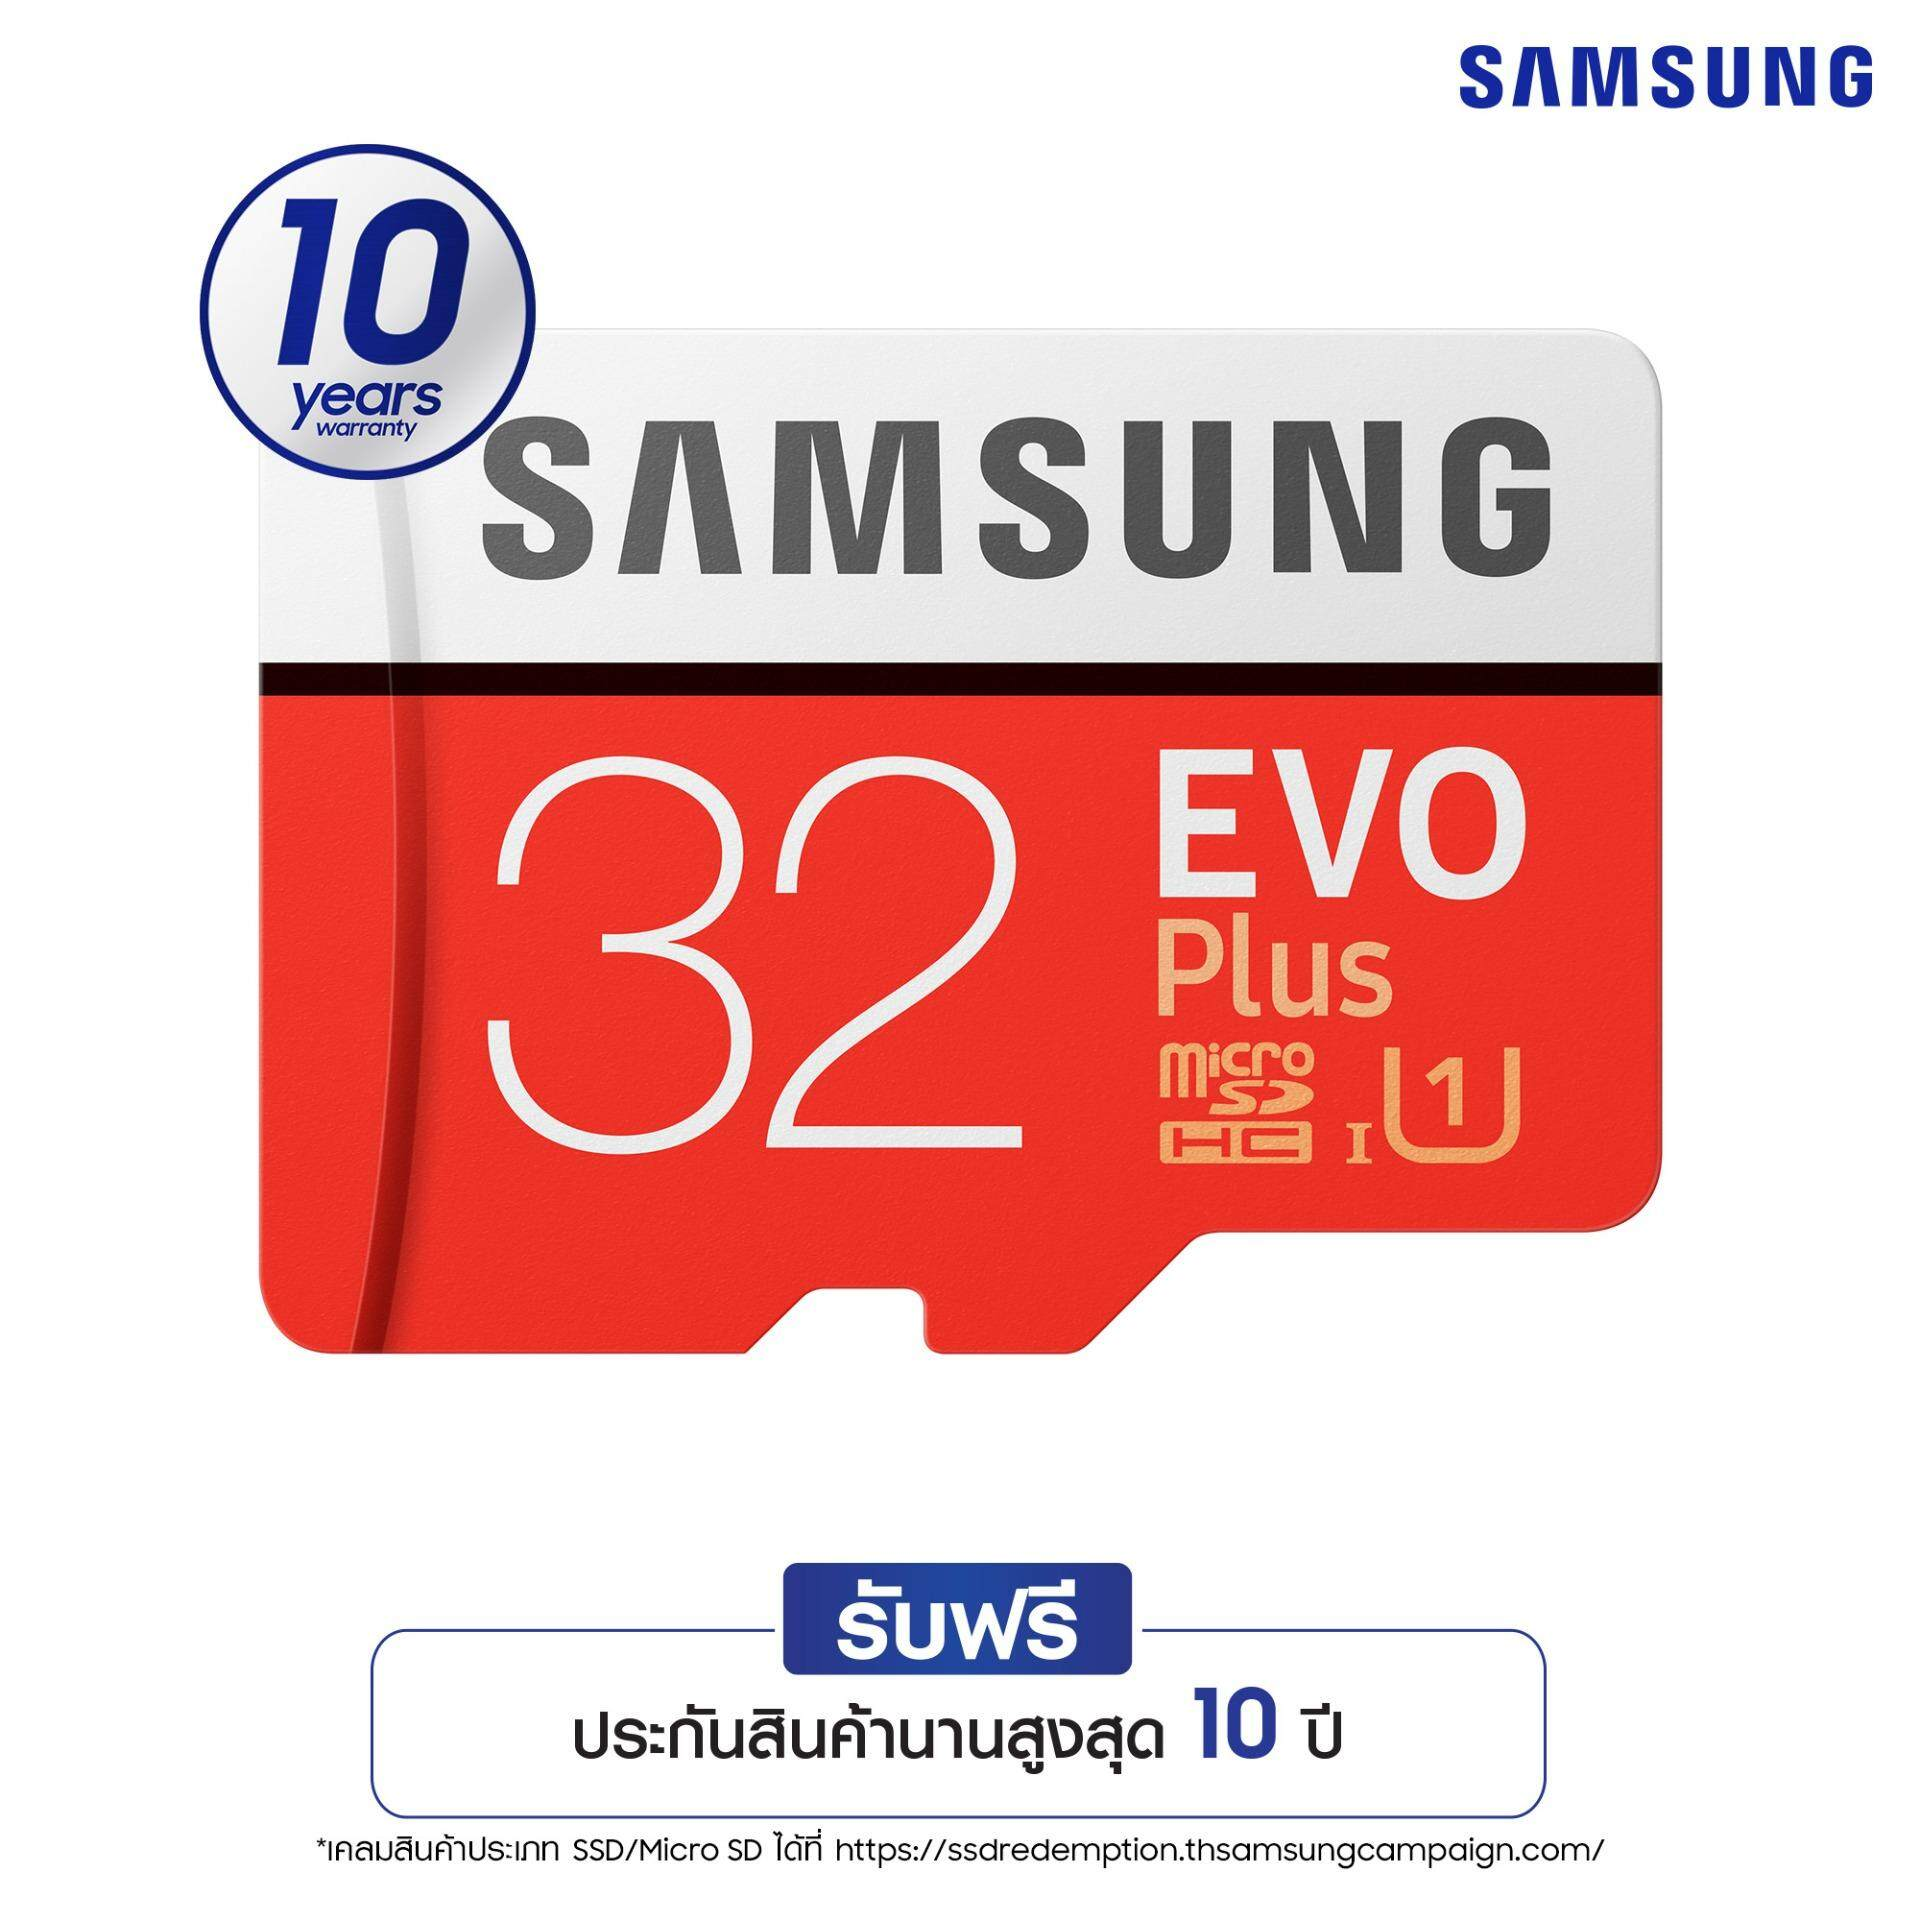 Samsung Microsd Card 32gb Evo Plus By Lazada Retail Samsung.